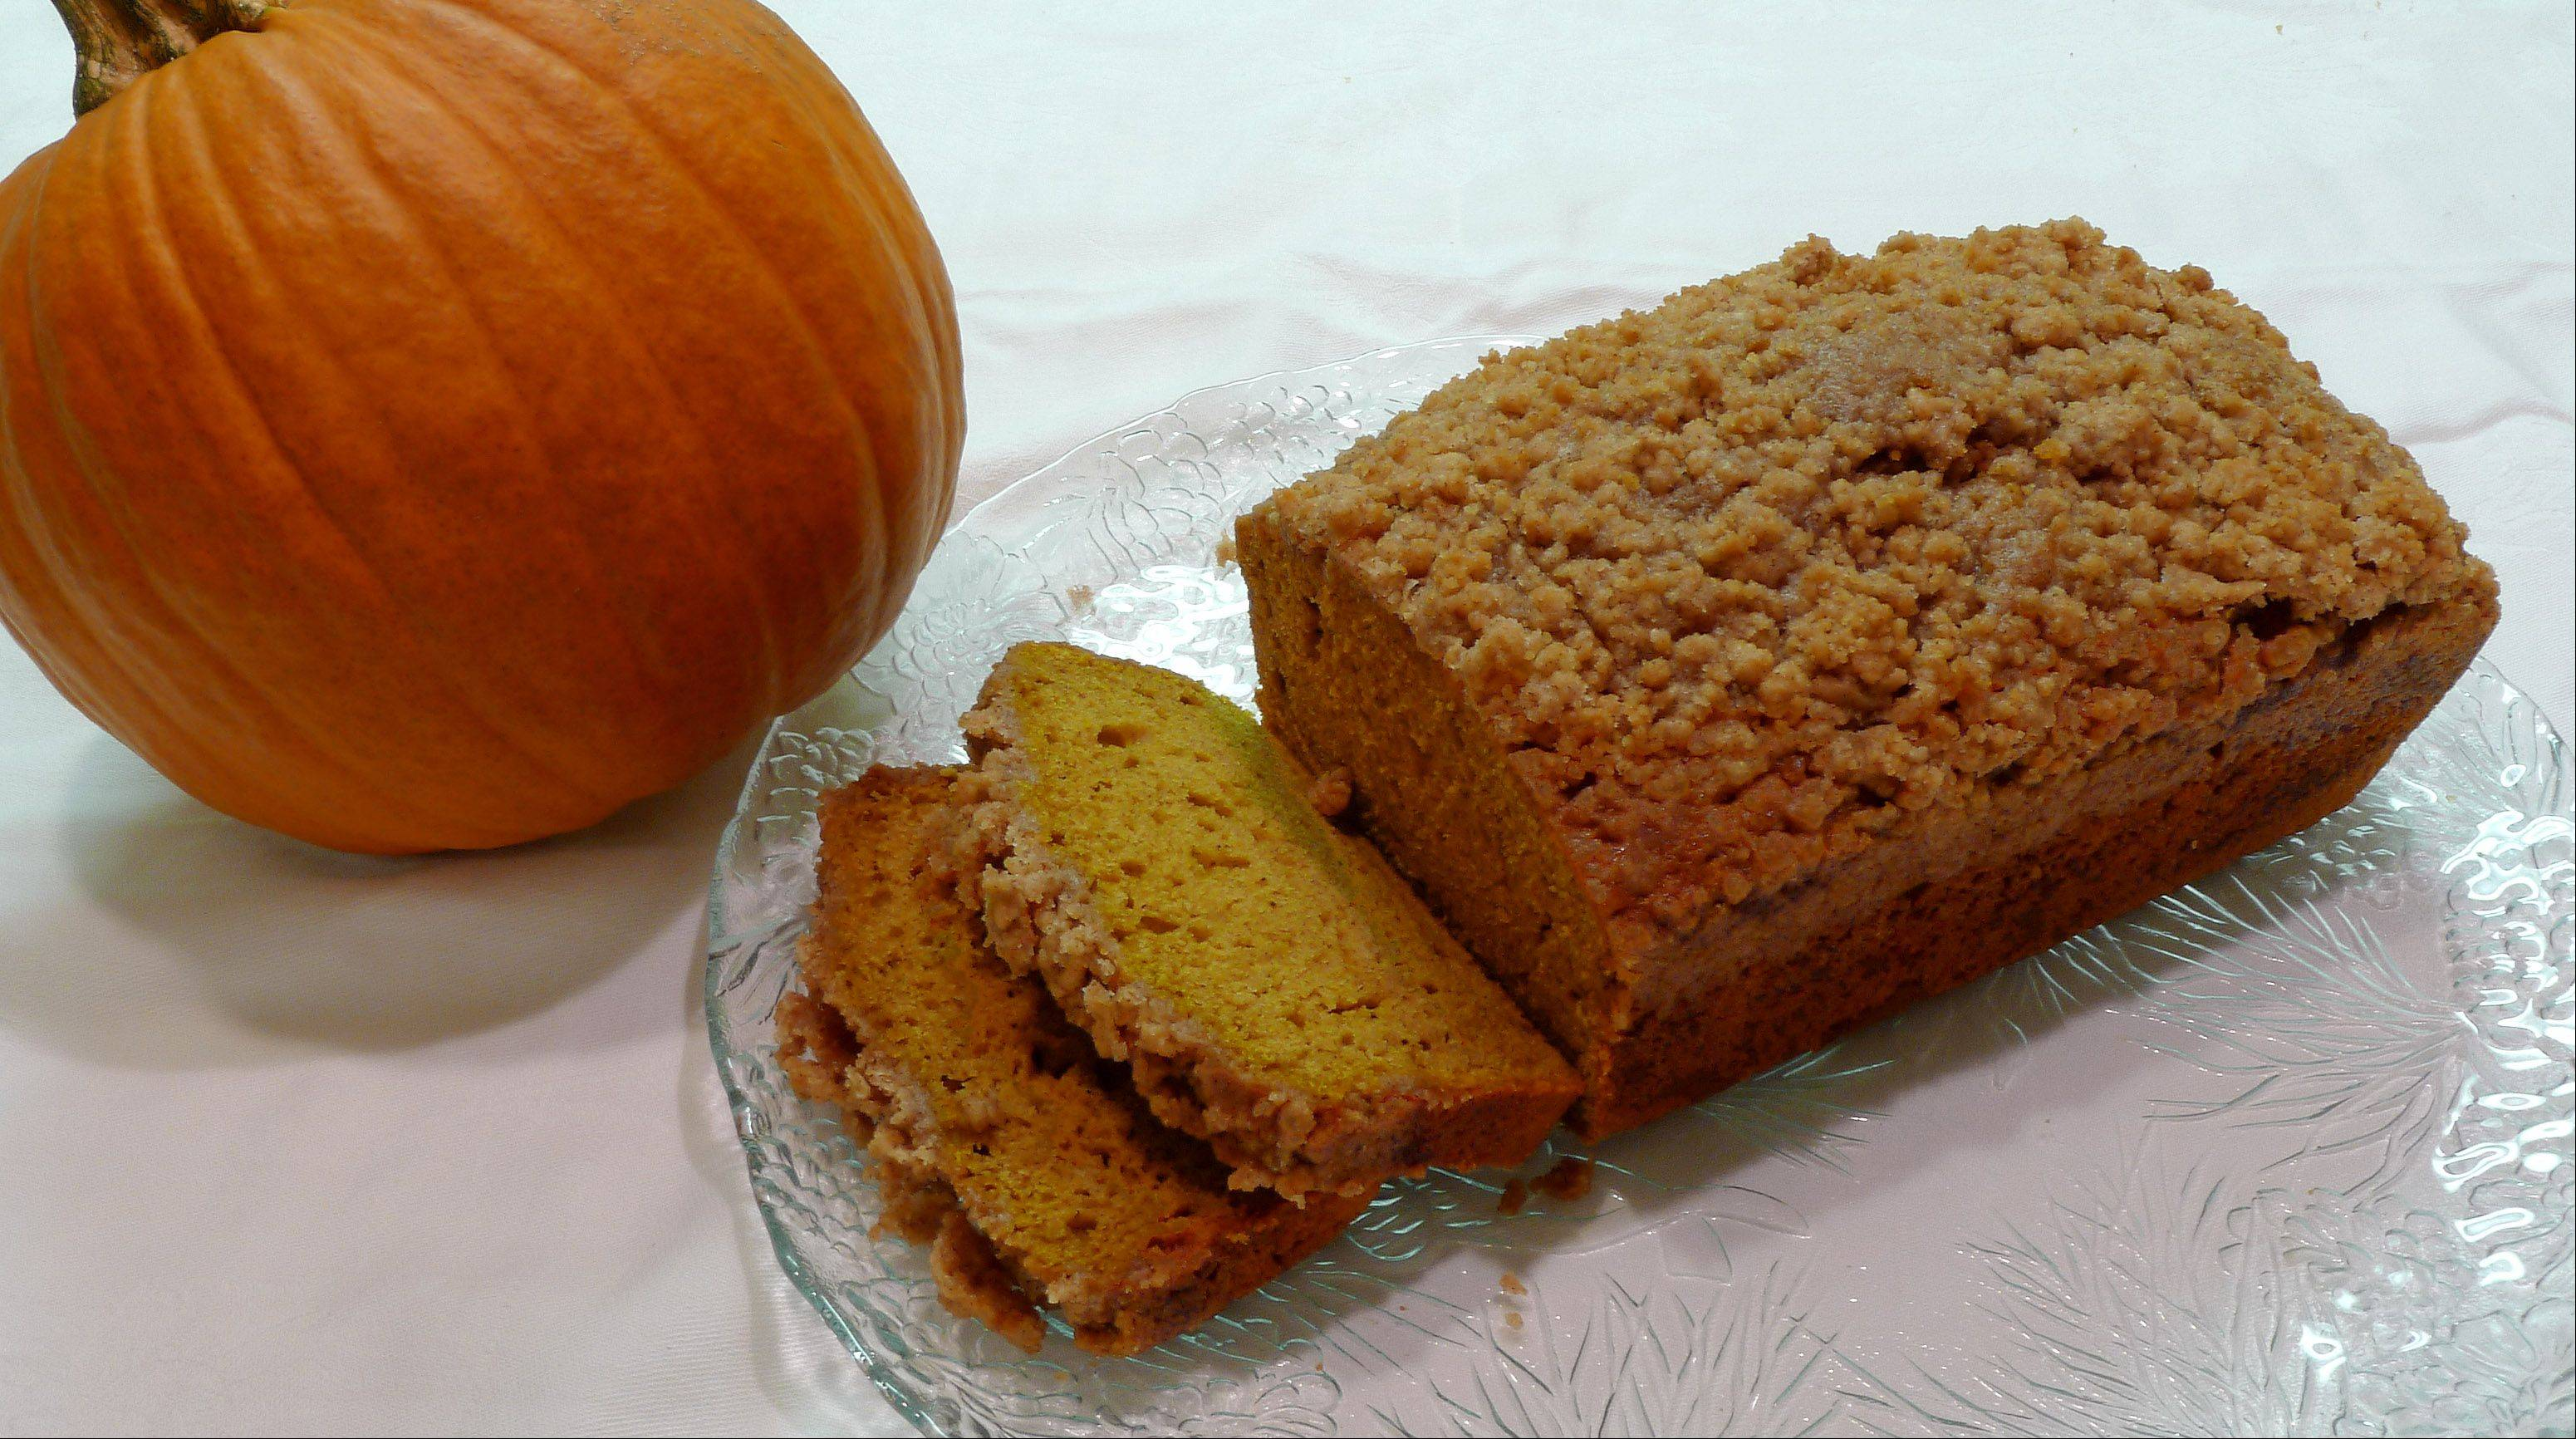 Seasonal pumpkin ale holds the key to moist and savory pumpkin bread.